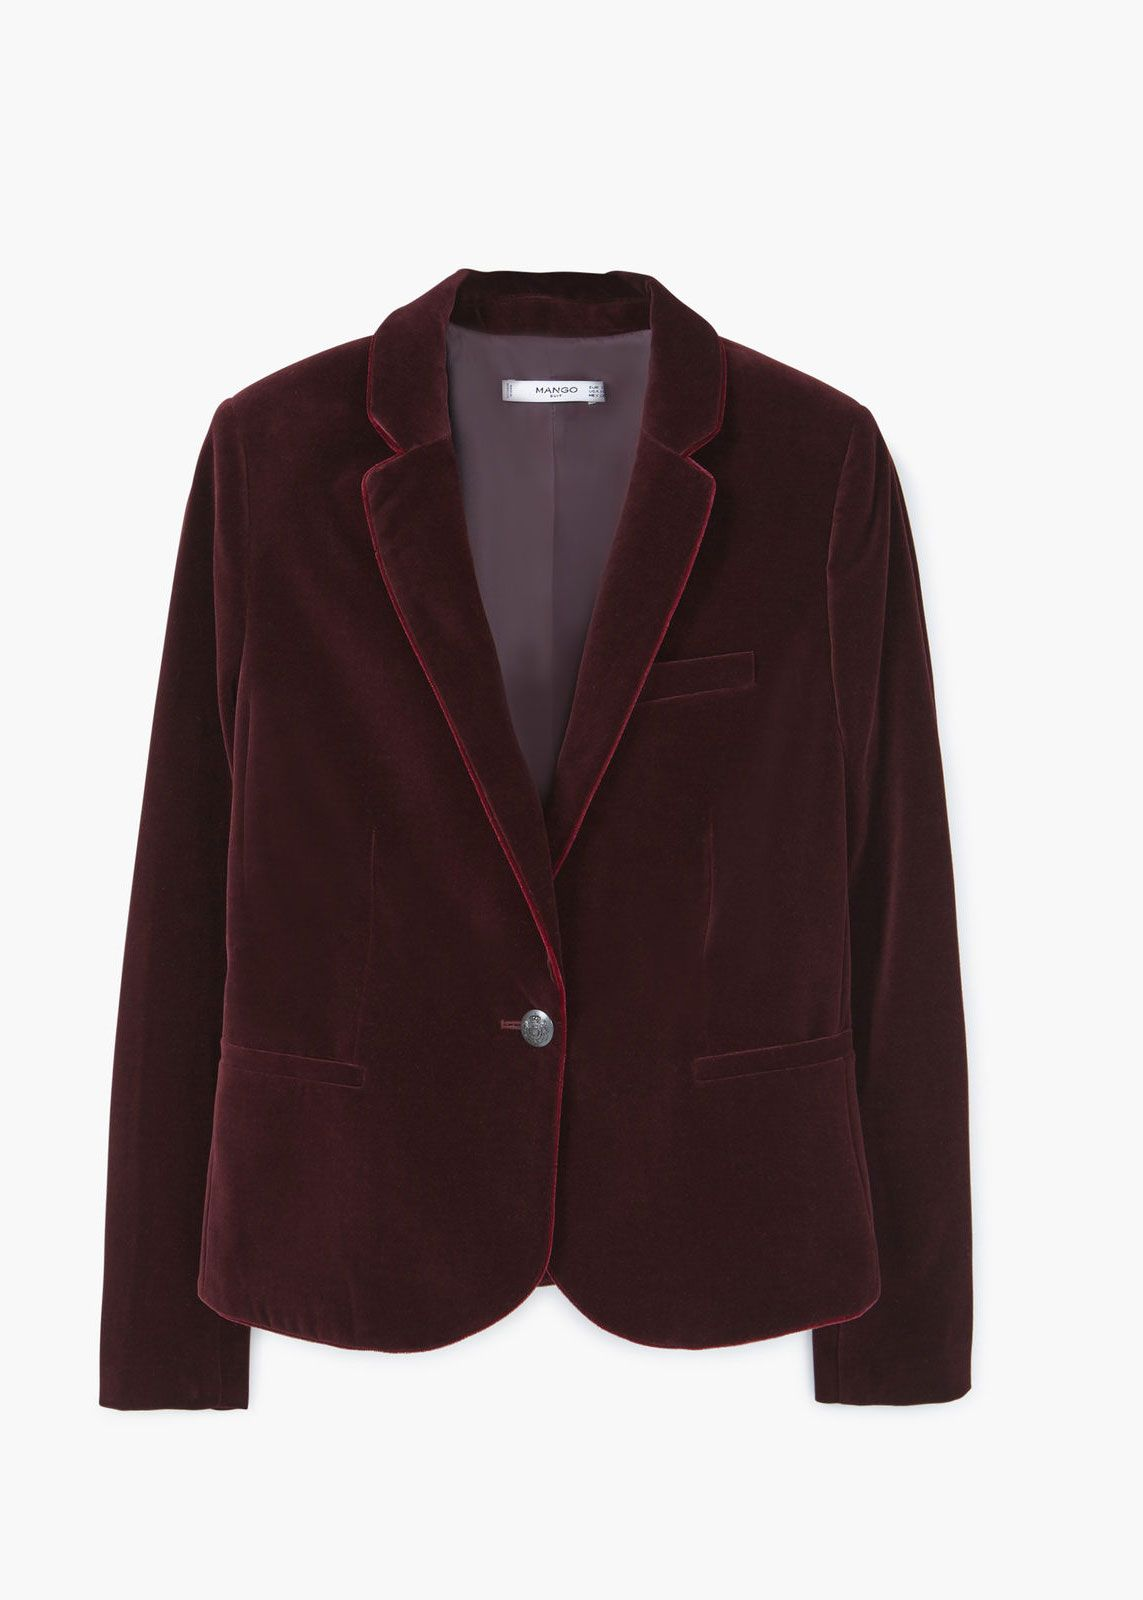 11 Reasons You'll Want a Velvet Blazer This Winter